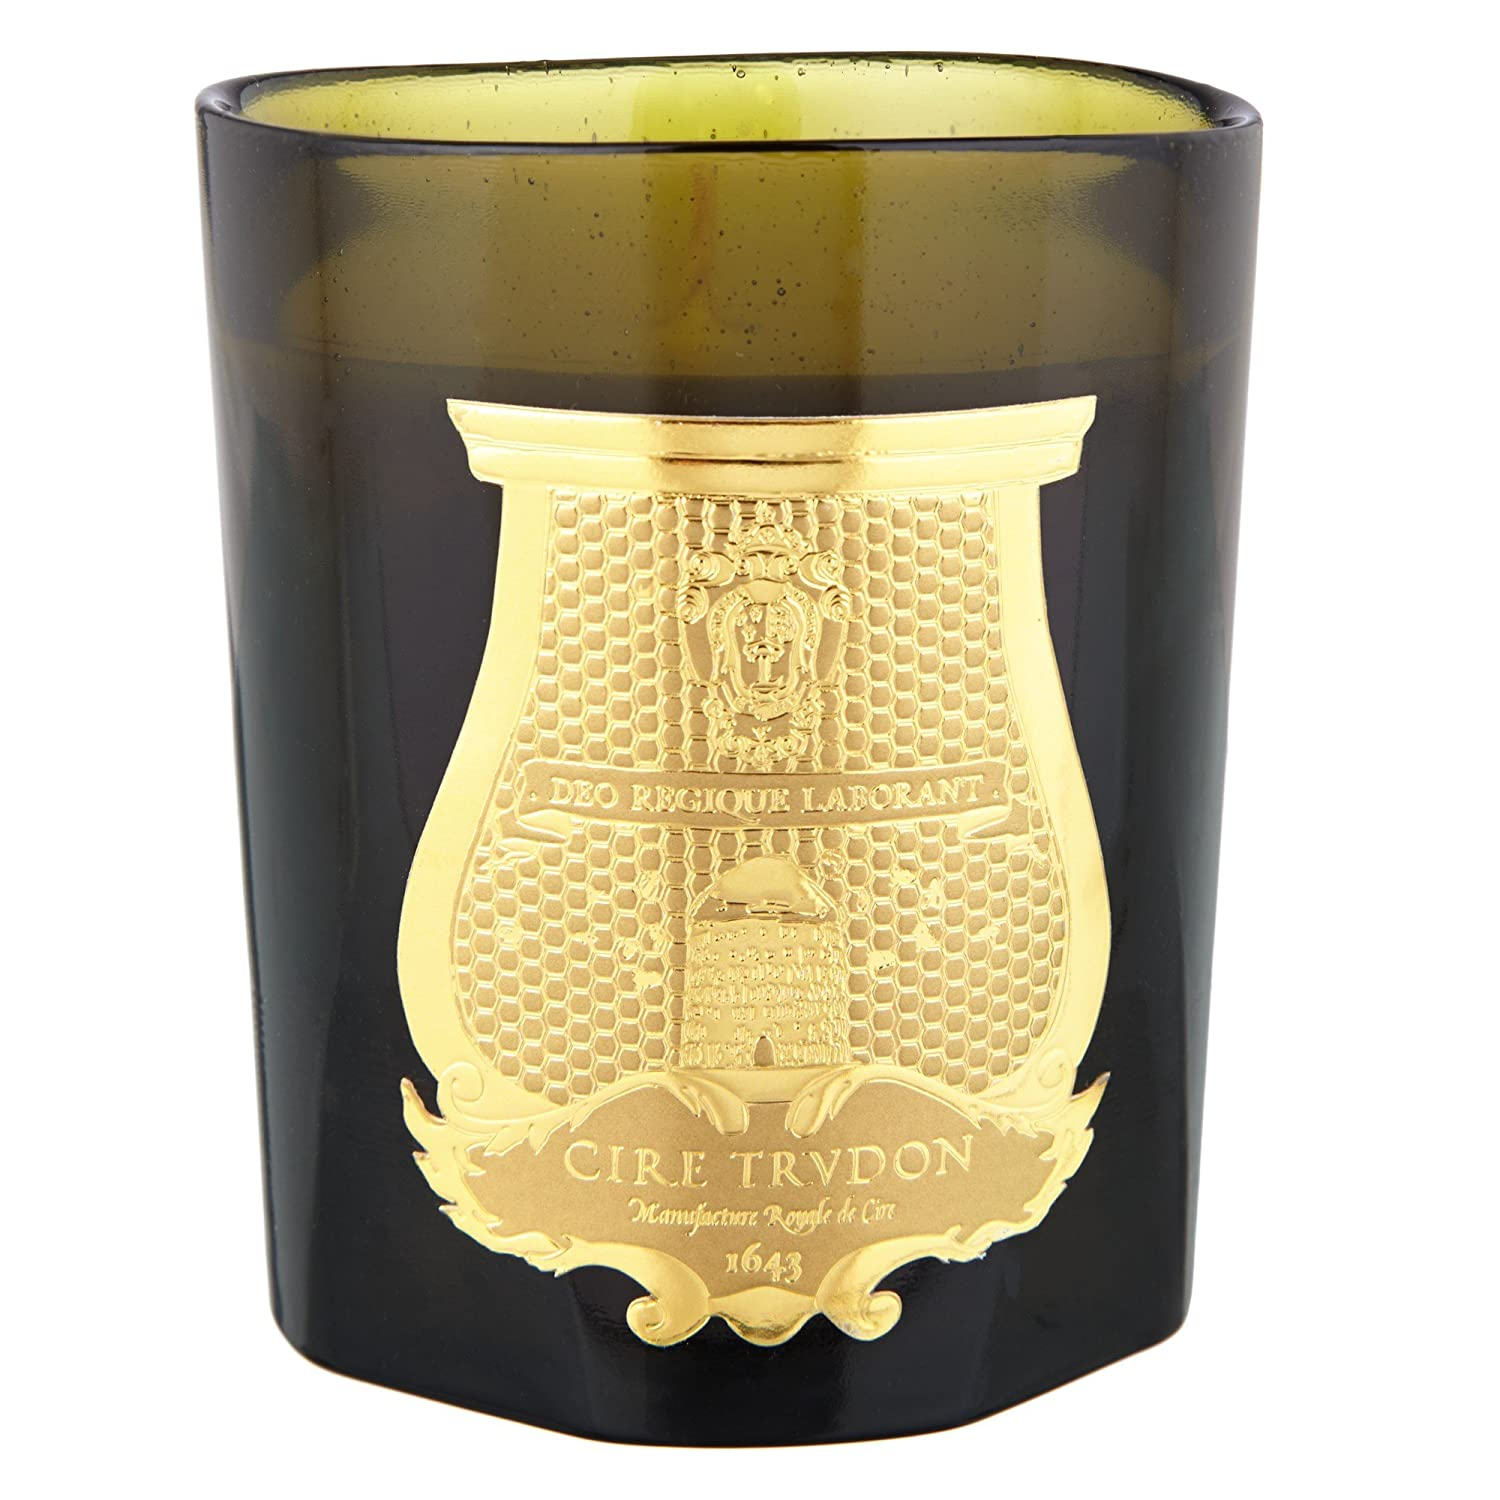 Cire Trudon Proletaire Scented Candle (Pack of 2) - Cire Trudon Proletaire香りのキャンドル (Cire Trudon) (x2) [並行輸入品]   B01N0A5HJ1